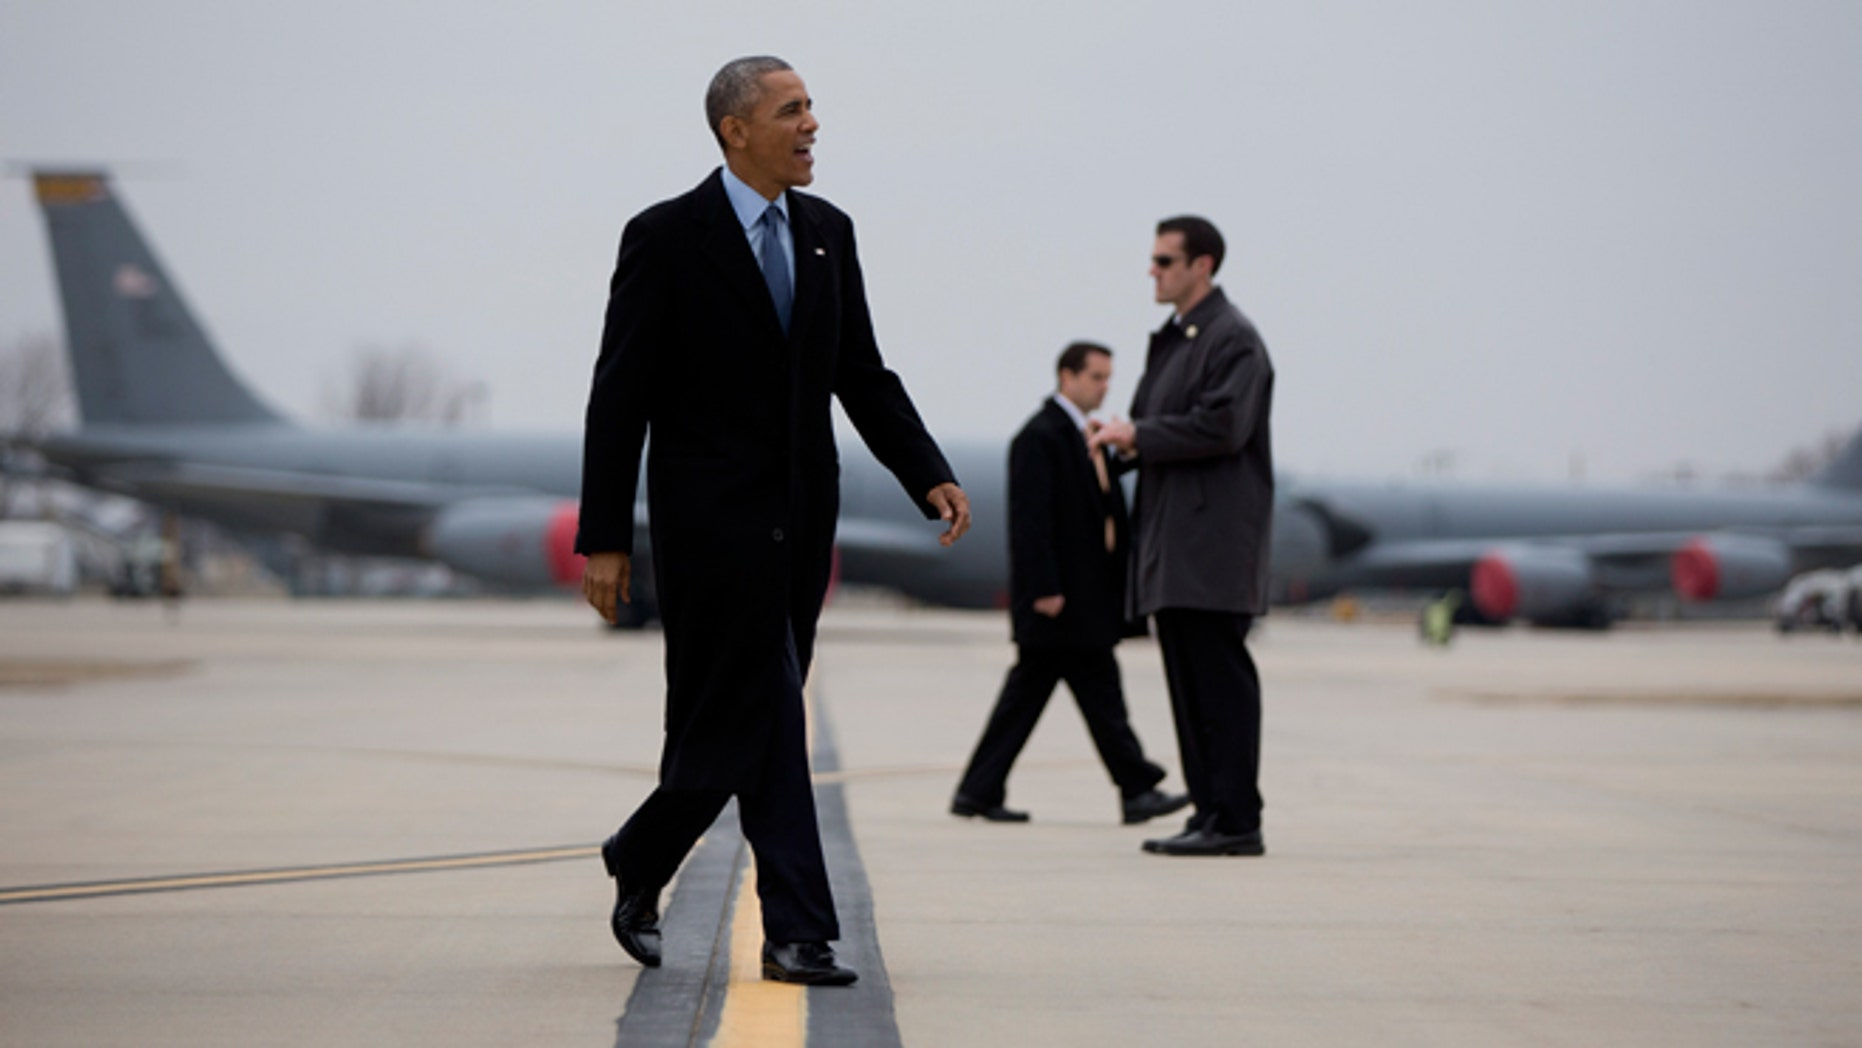 Jan. 22, 2015: President Obama walks to board Air Force One at Forbes Field Airport in Topeka, Kansas, en route to Washington, after speaking at the University of Kansas in Lawrence, Kansas.